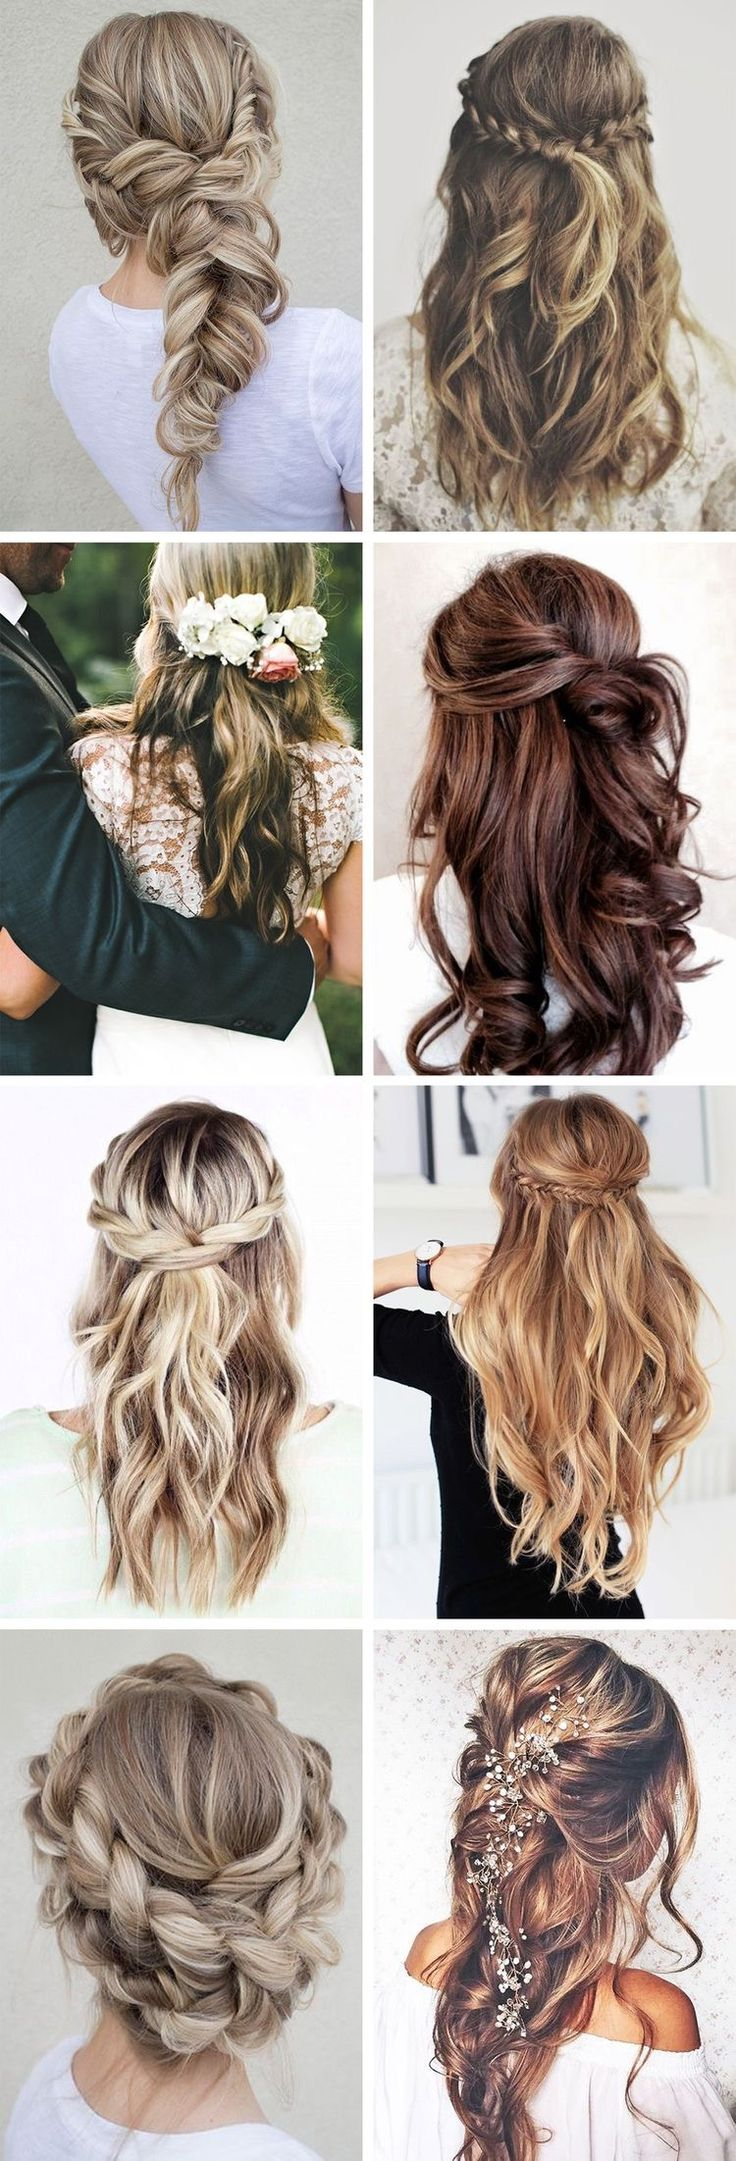 best images about hair on pinterest updo hairstyles and